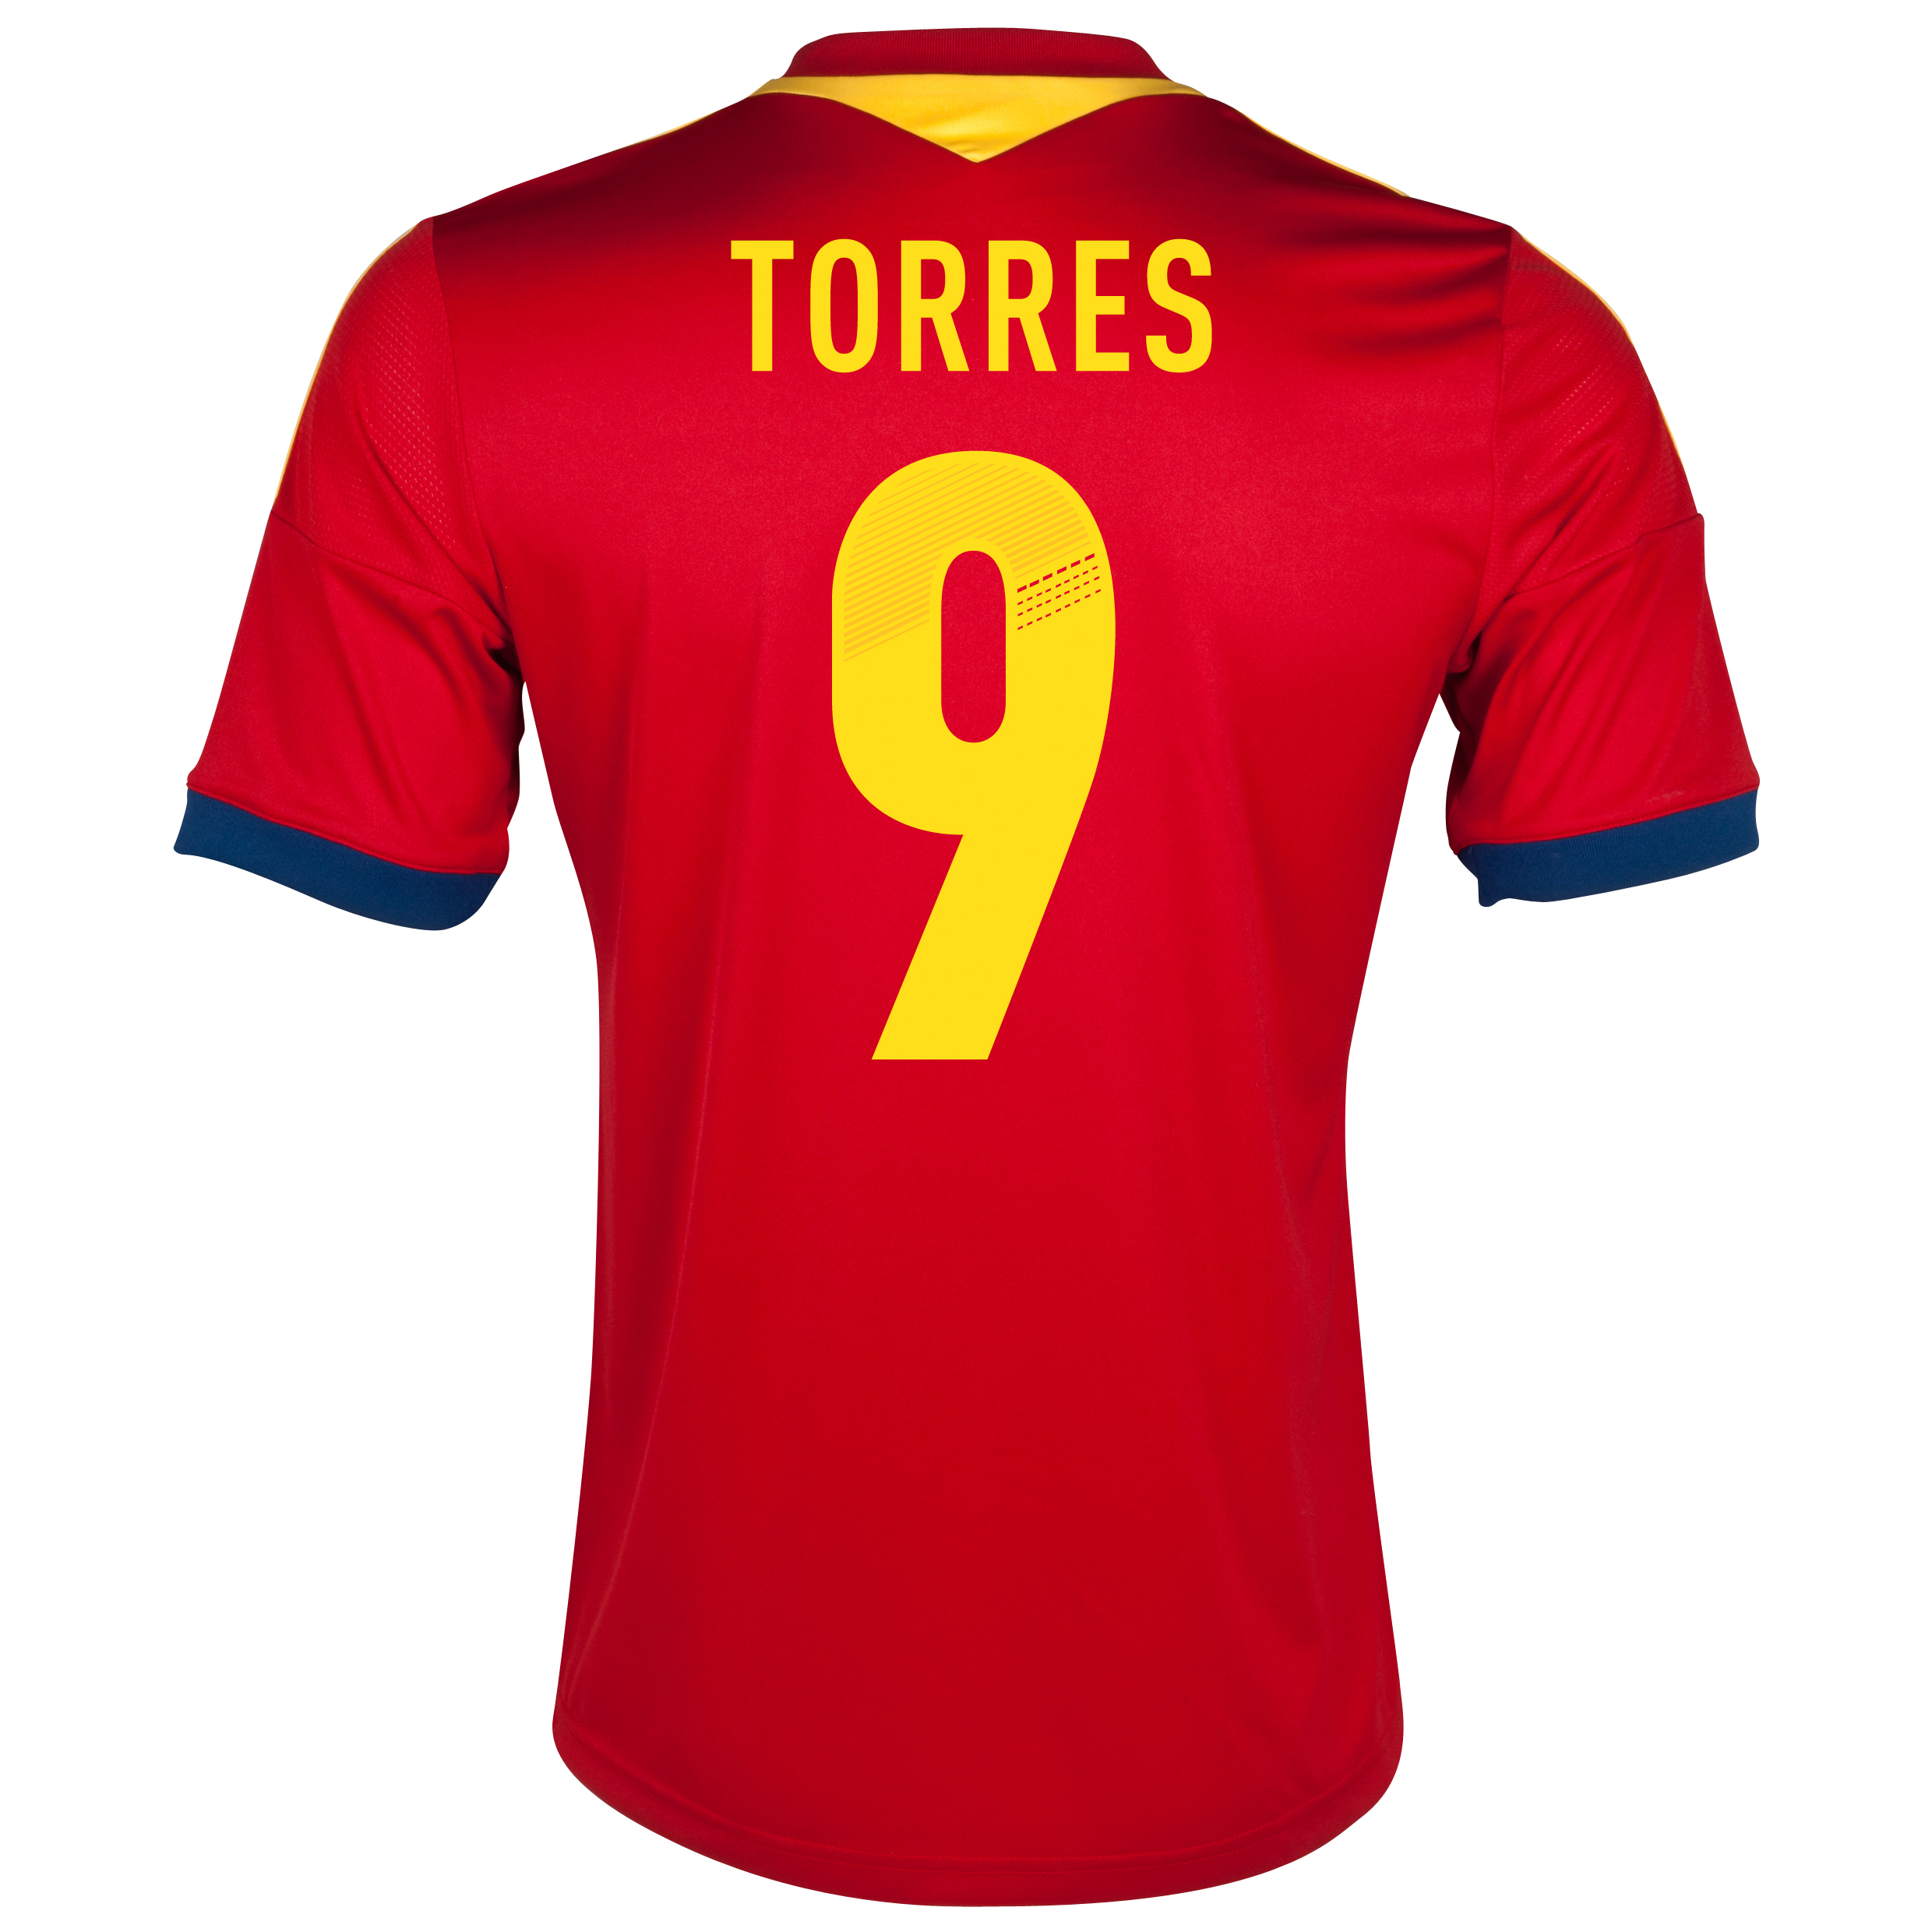 Spain Home Shirt 2013 with Torres 9 printing